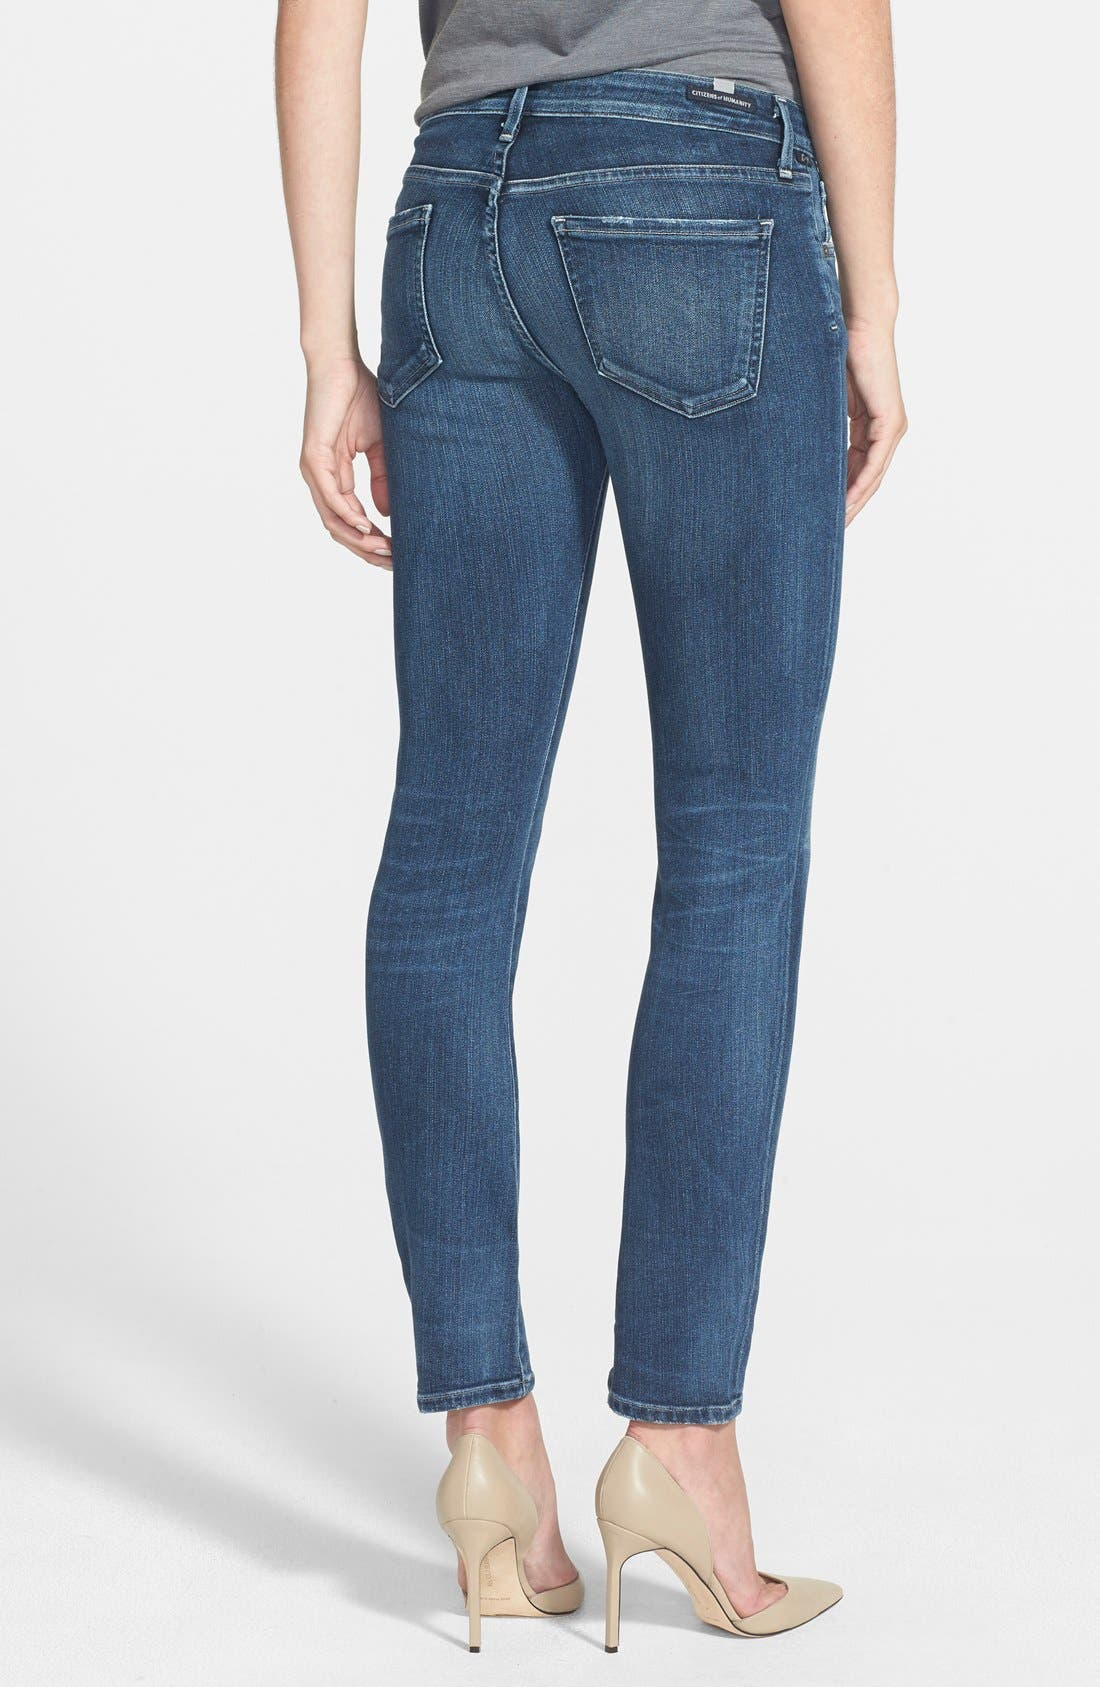 Alternate Image 2  - Citizens of Humanity 'Arielle' Mid Rise Skinny Jeans (Hewett) (Petite)